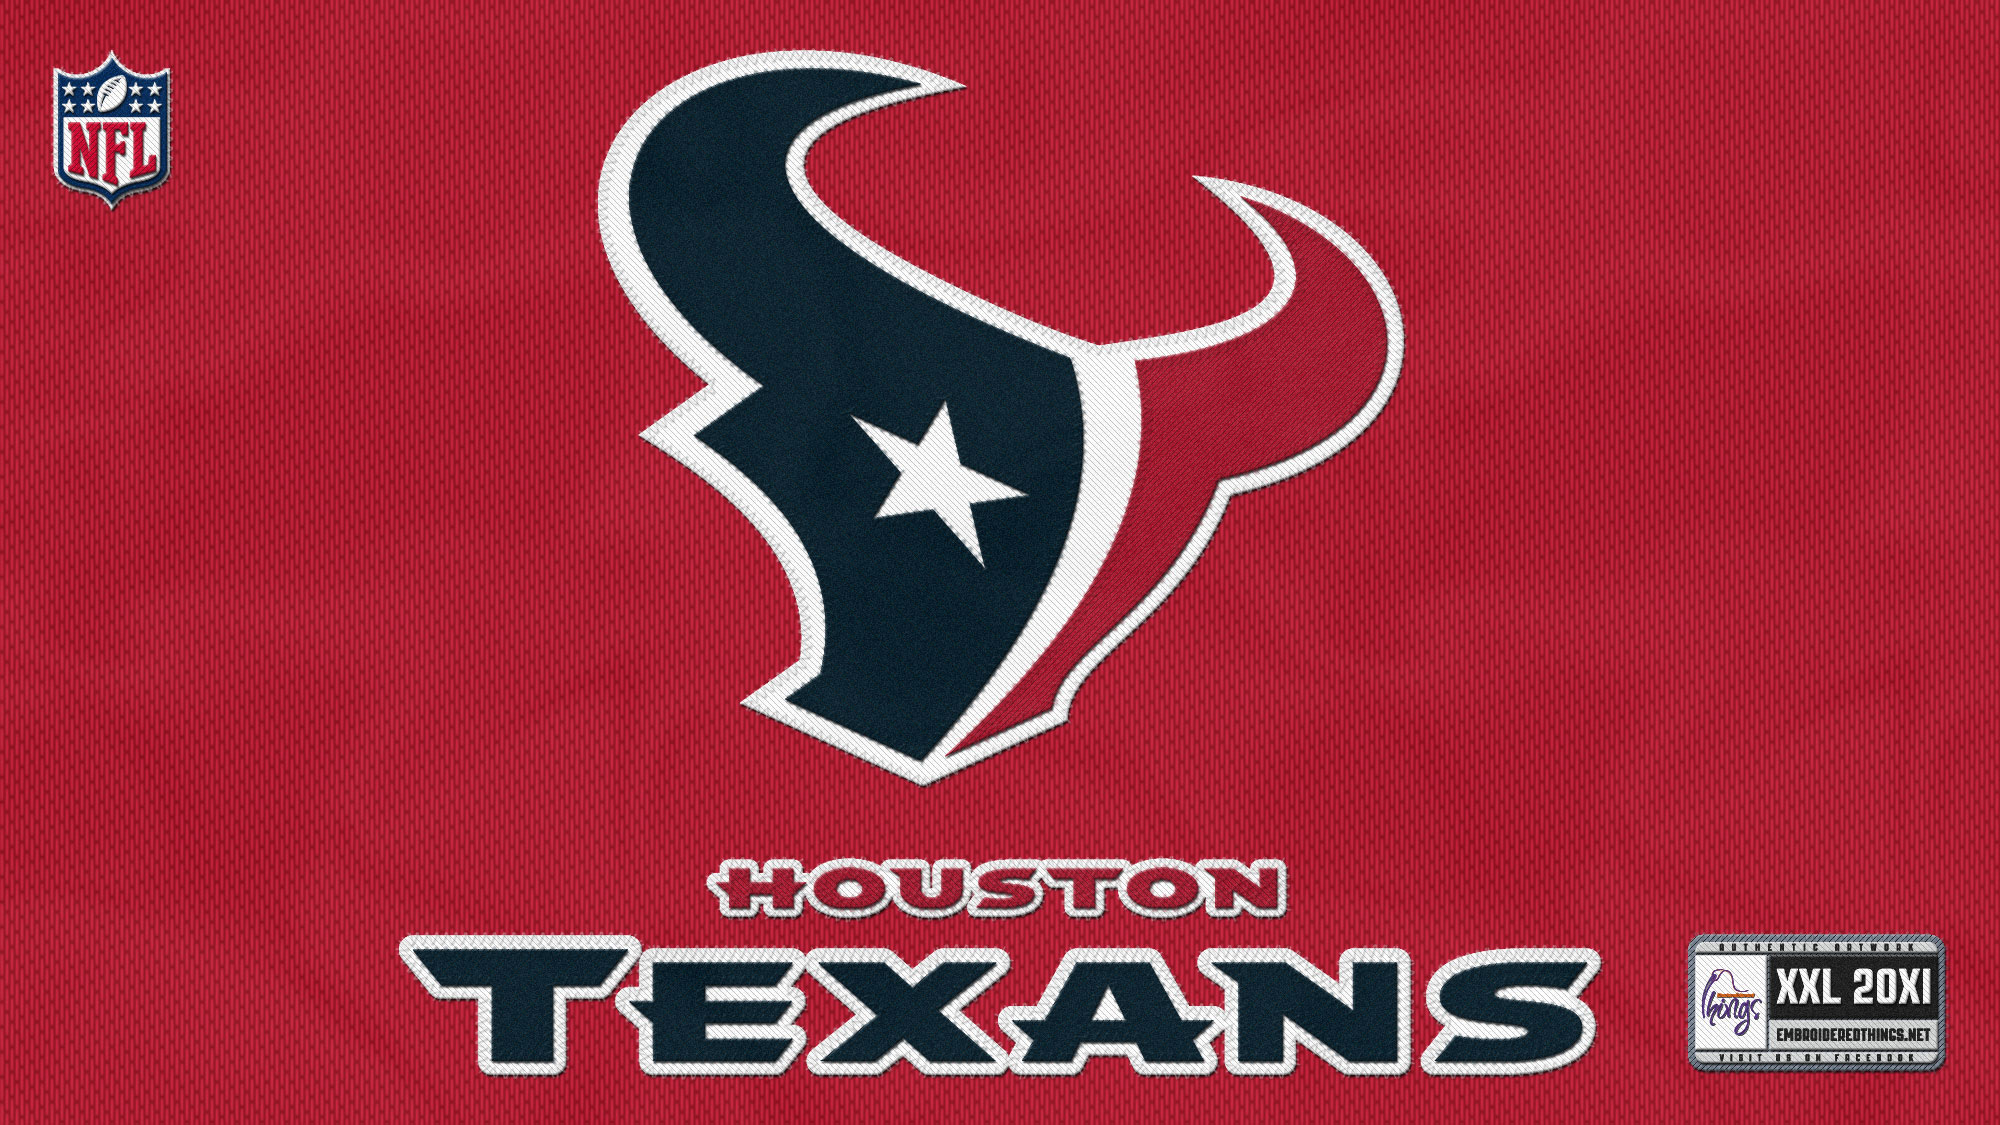 HOUSTON TEXANS nfl football d wallpaper 2000x1125 156254 2000x1125